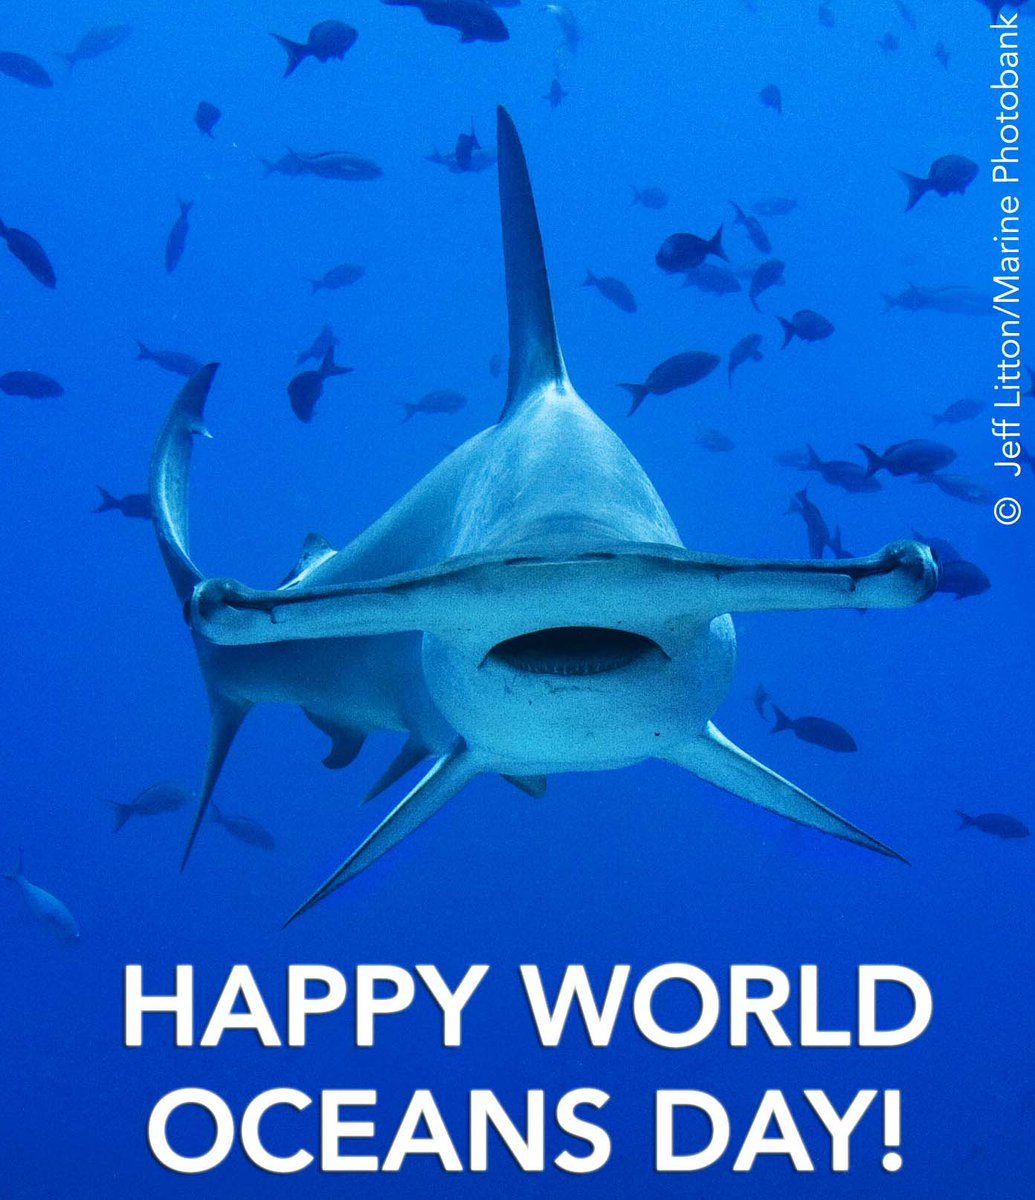 It's #WorldOceansDay. RT to show your love for our oceans that cover 70 percent of the Earth's surface. https://t.co/kakmltaUxI